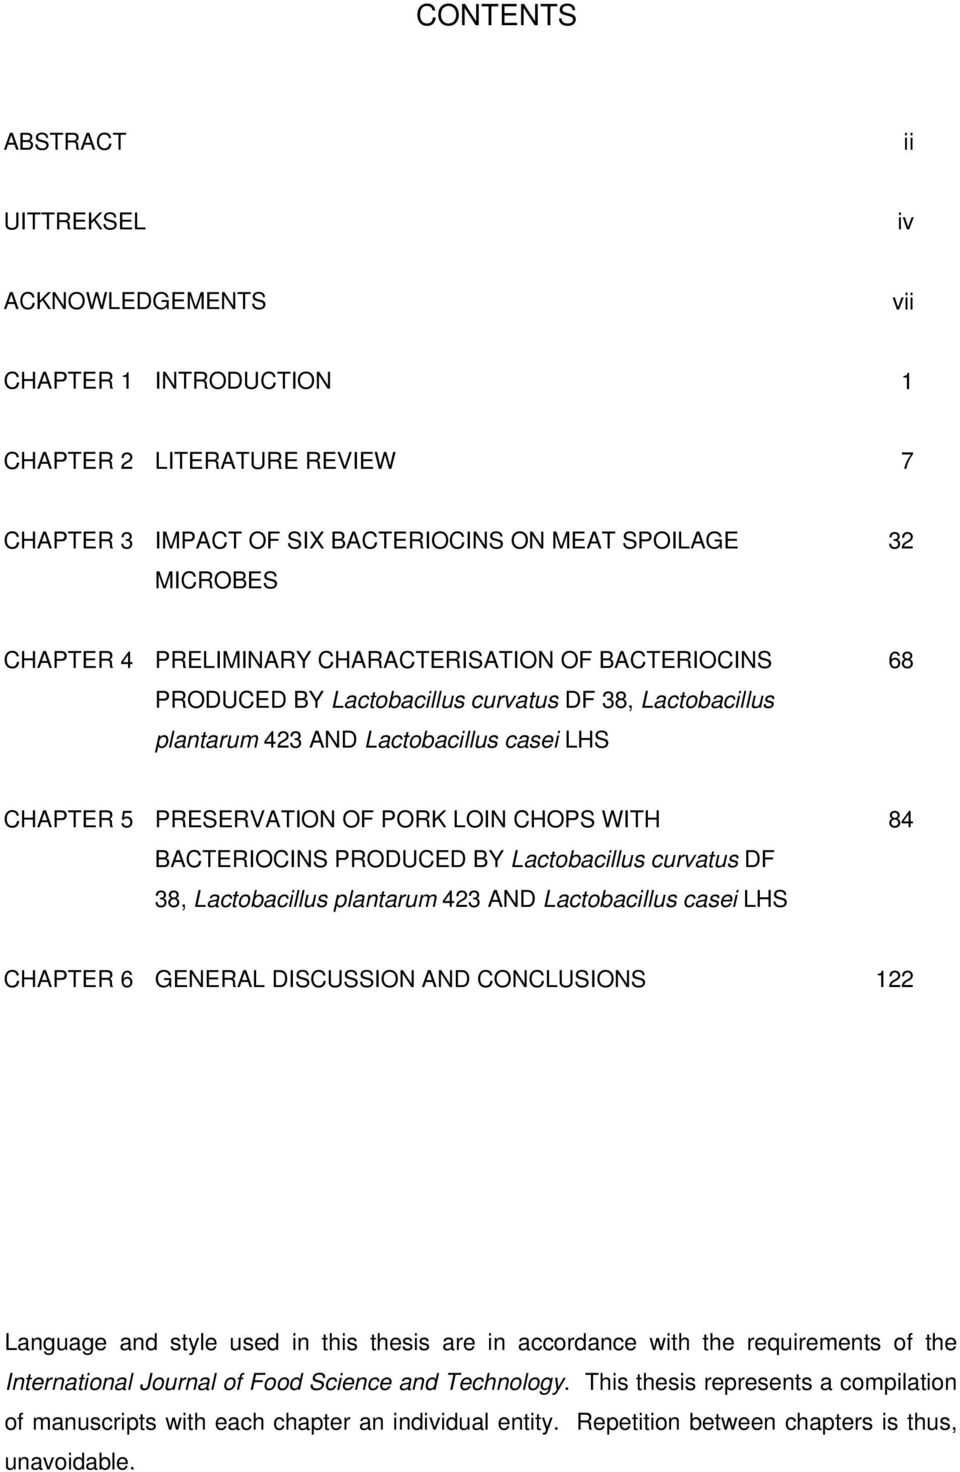 antimicrobial peptides thesis